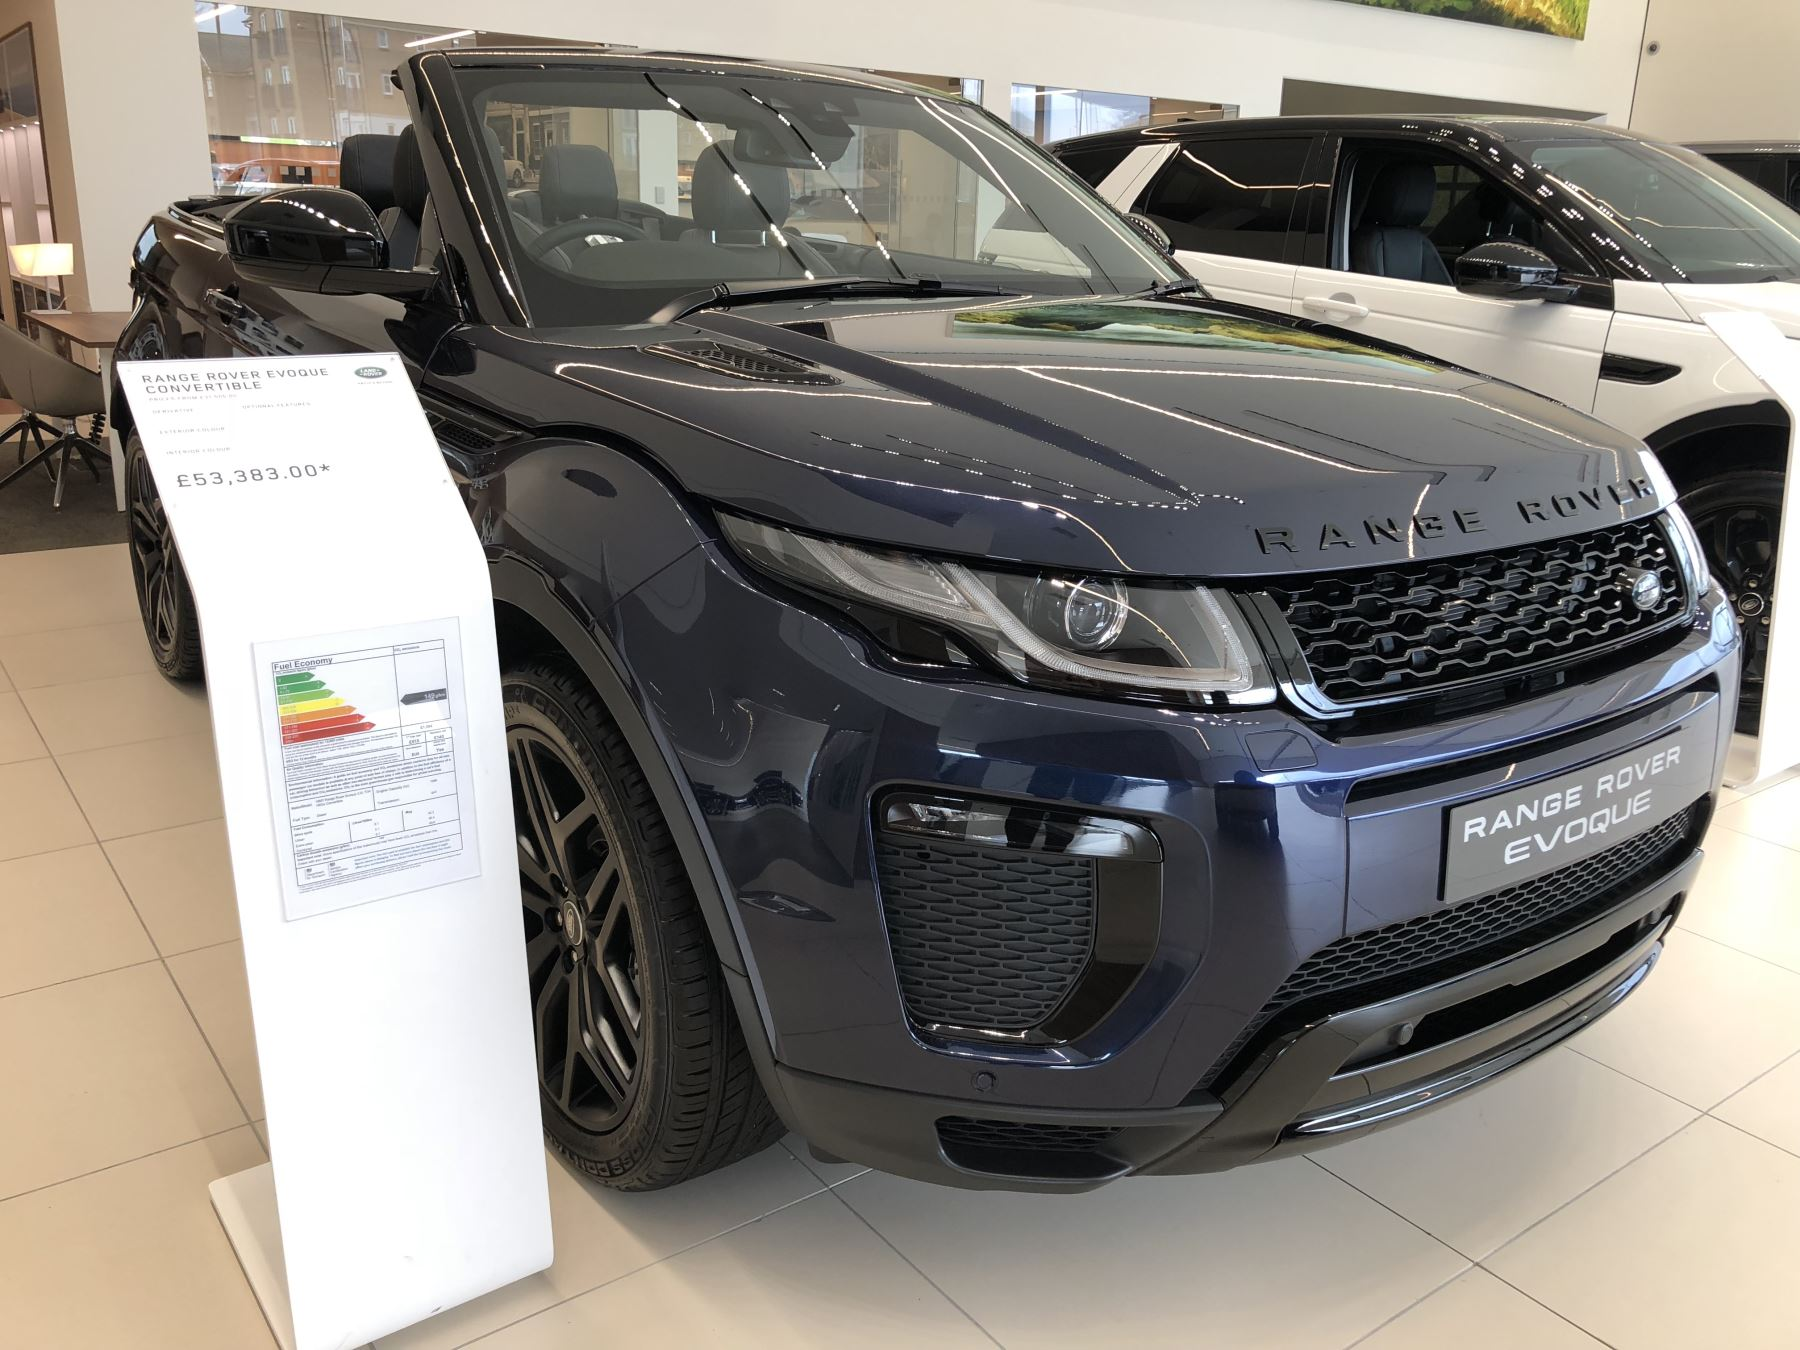 Land Rover Range Rover Evoque Convertible 2.0 TD4 HSE Dynamic Diesel Automatic 2 door Convertible (16MY) image